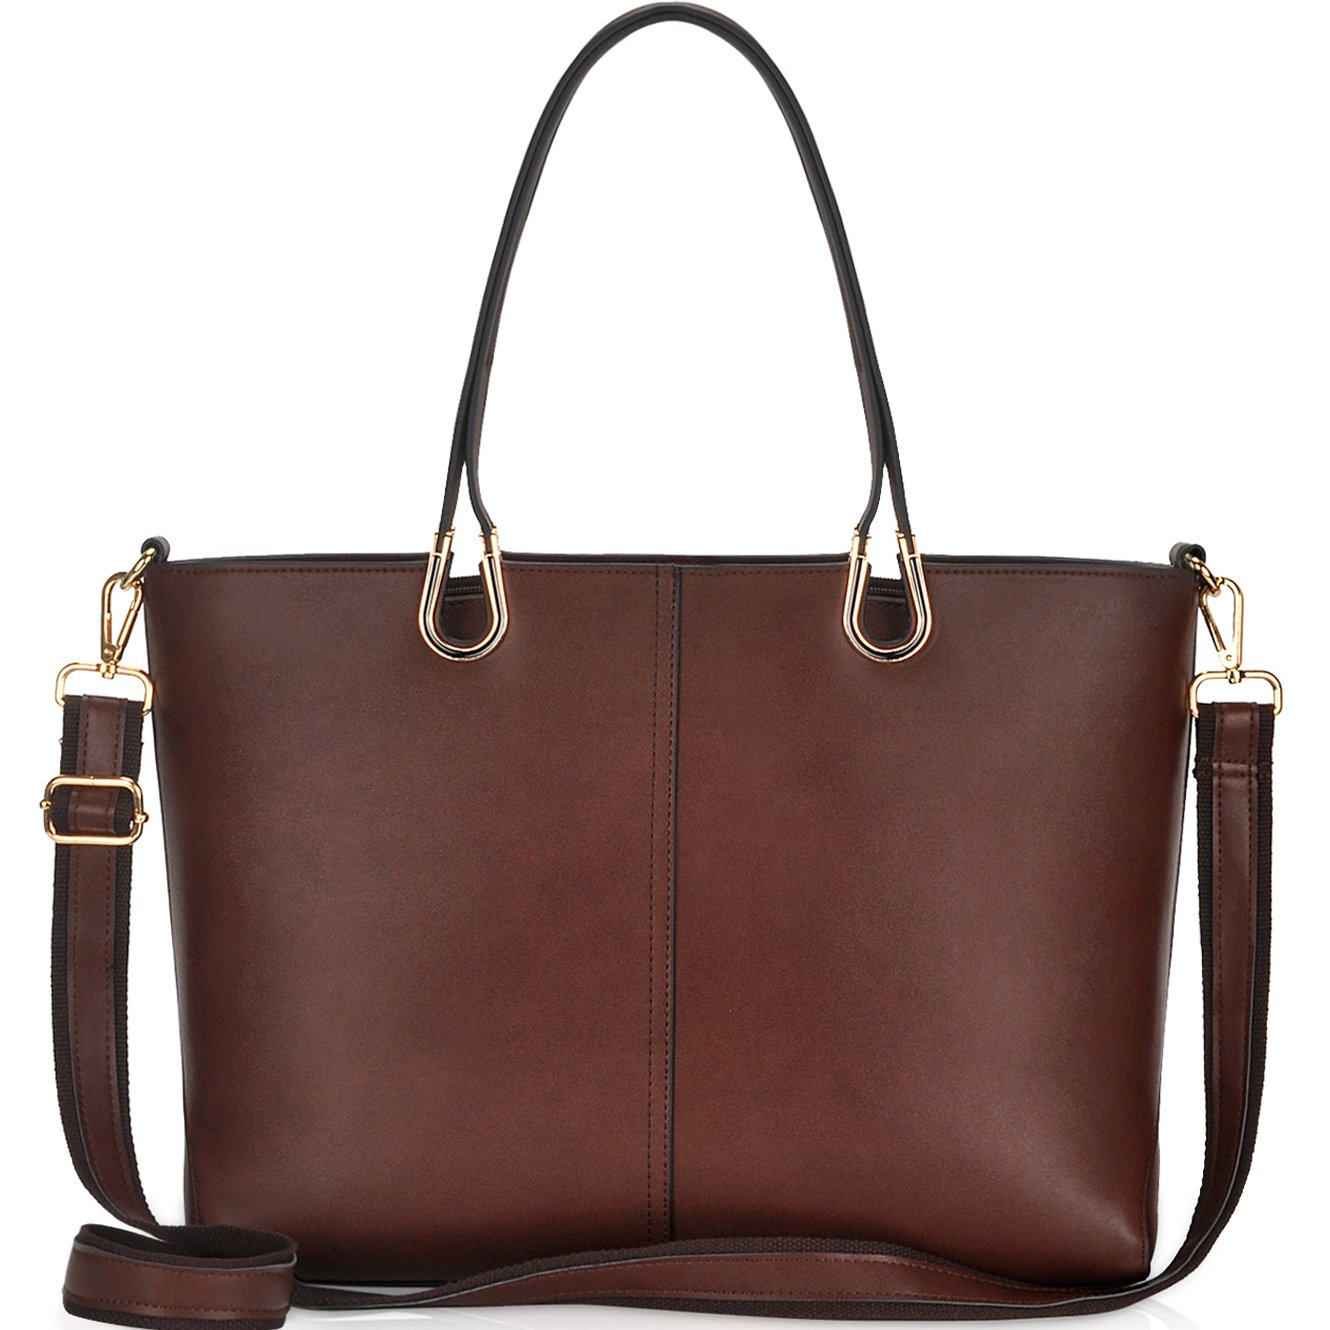 Laptop Bag for Women,Casual Business Computer Bags for Women 15.6 Inch,Large Tote Bag Briefcase with Wide Crossbody Strap,Coffee by EDODAY